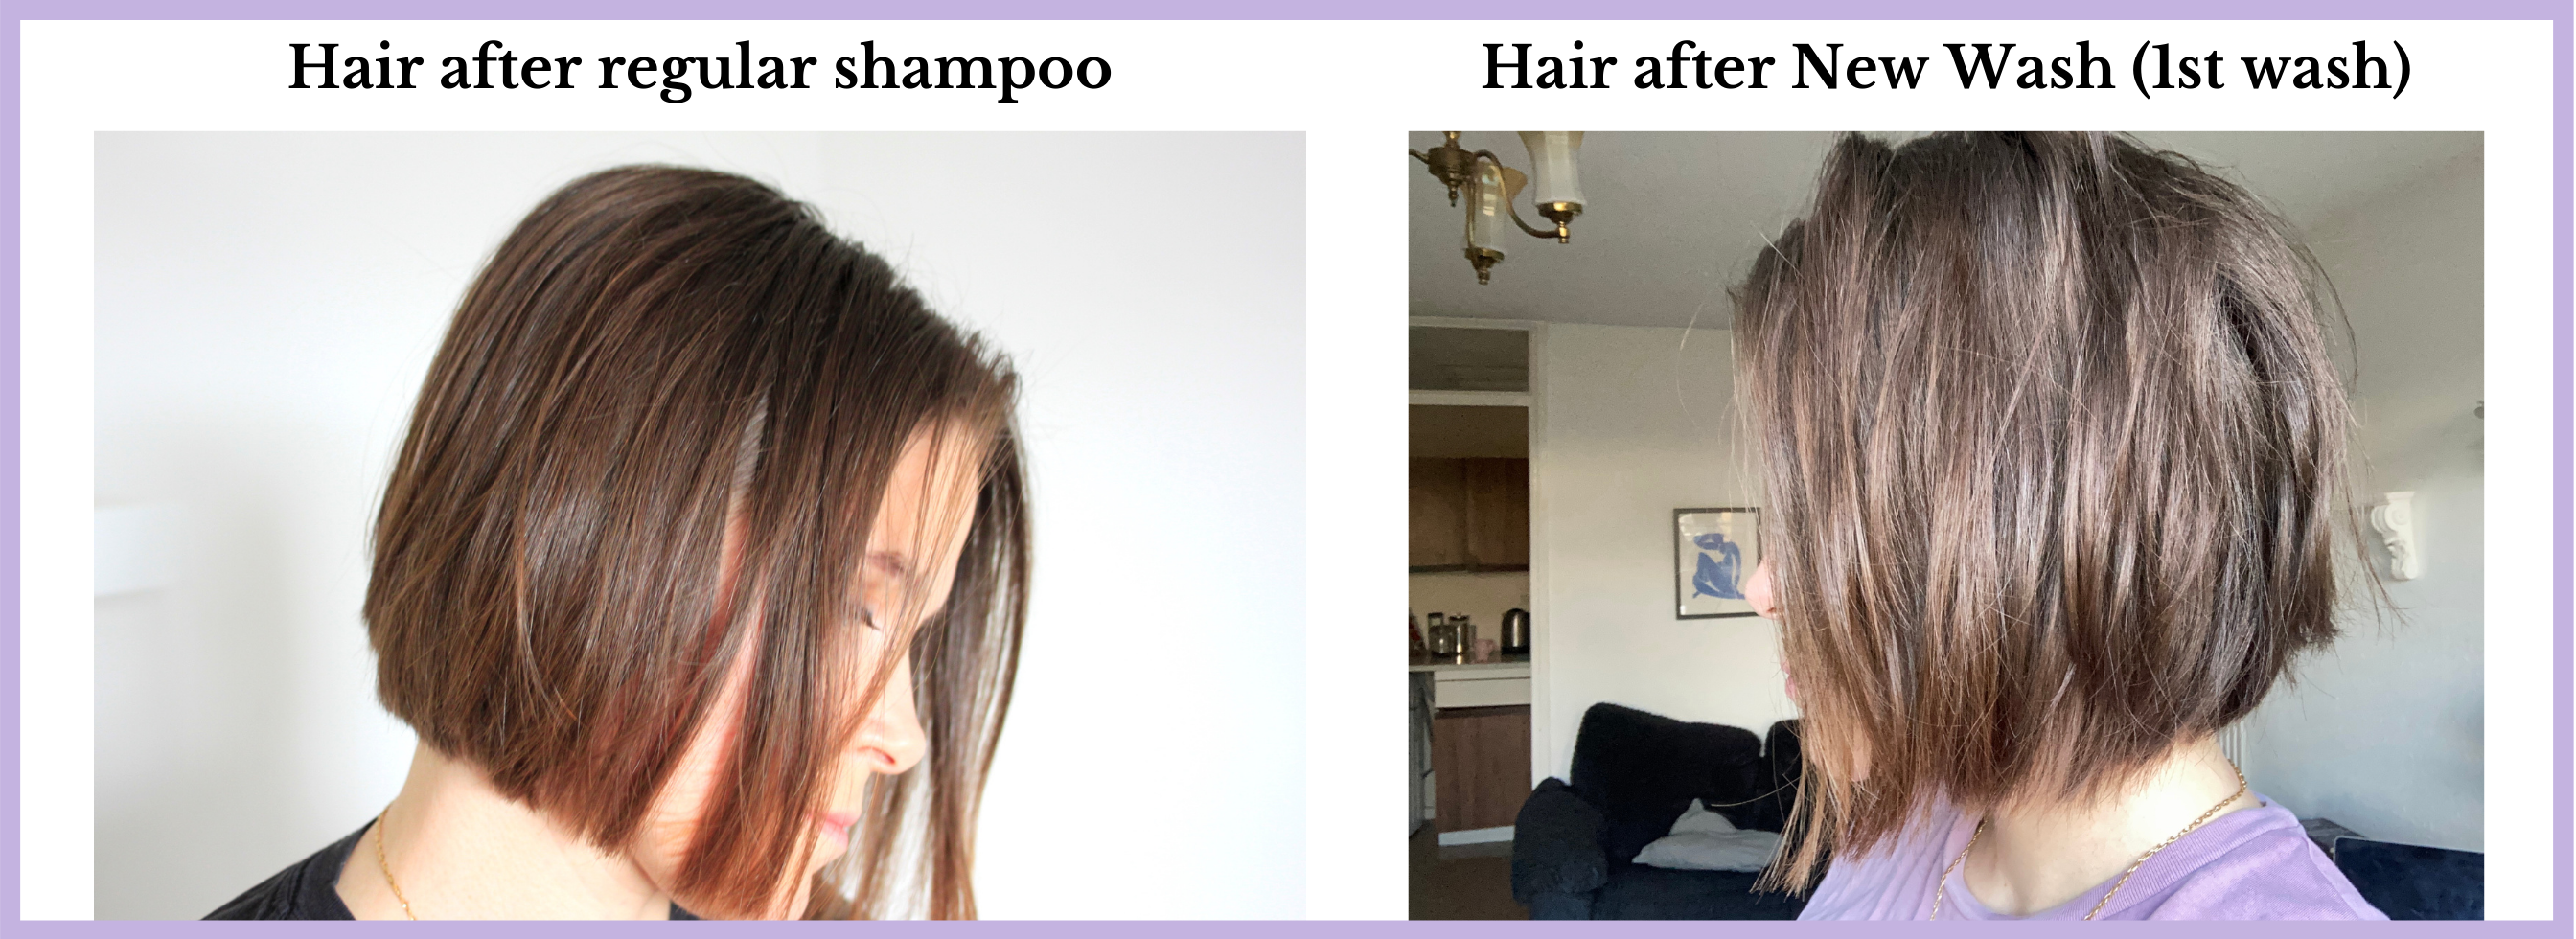 before and after hairstory